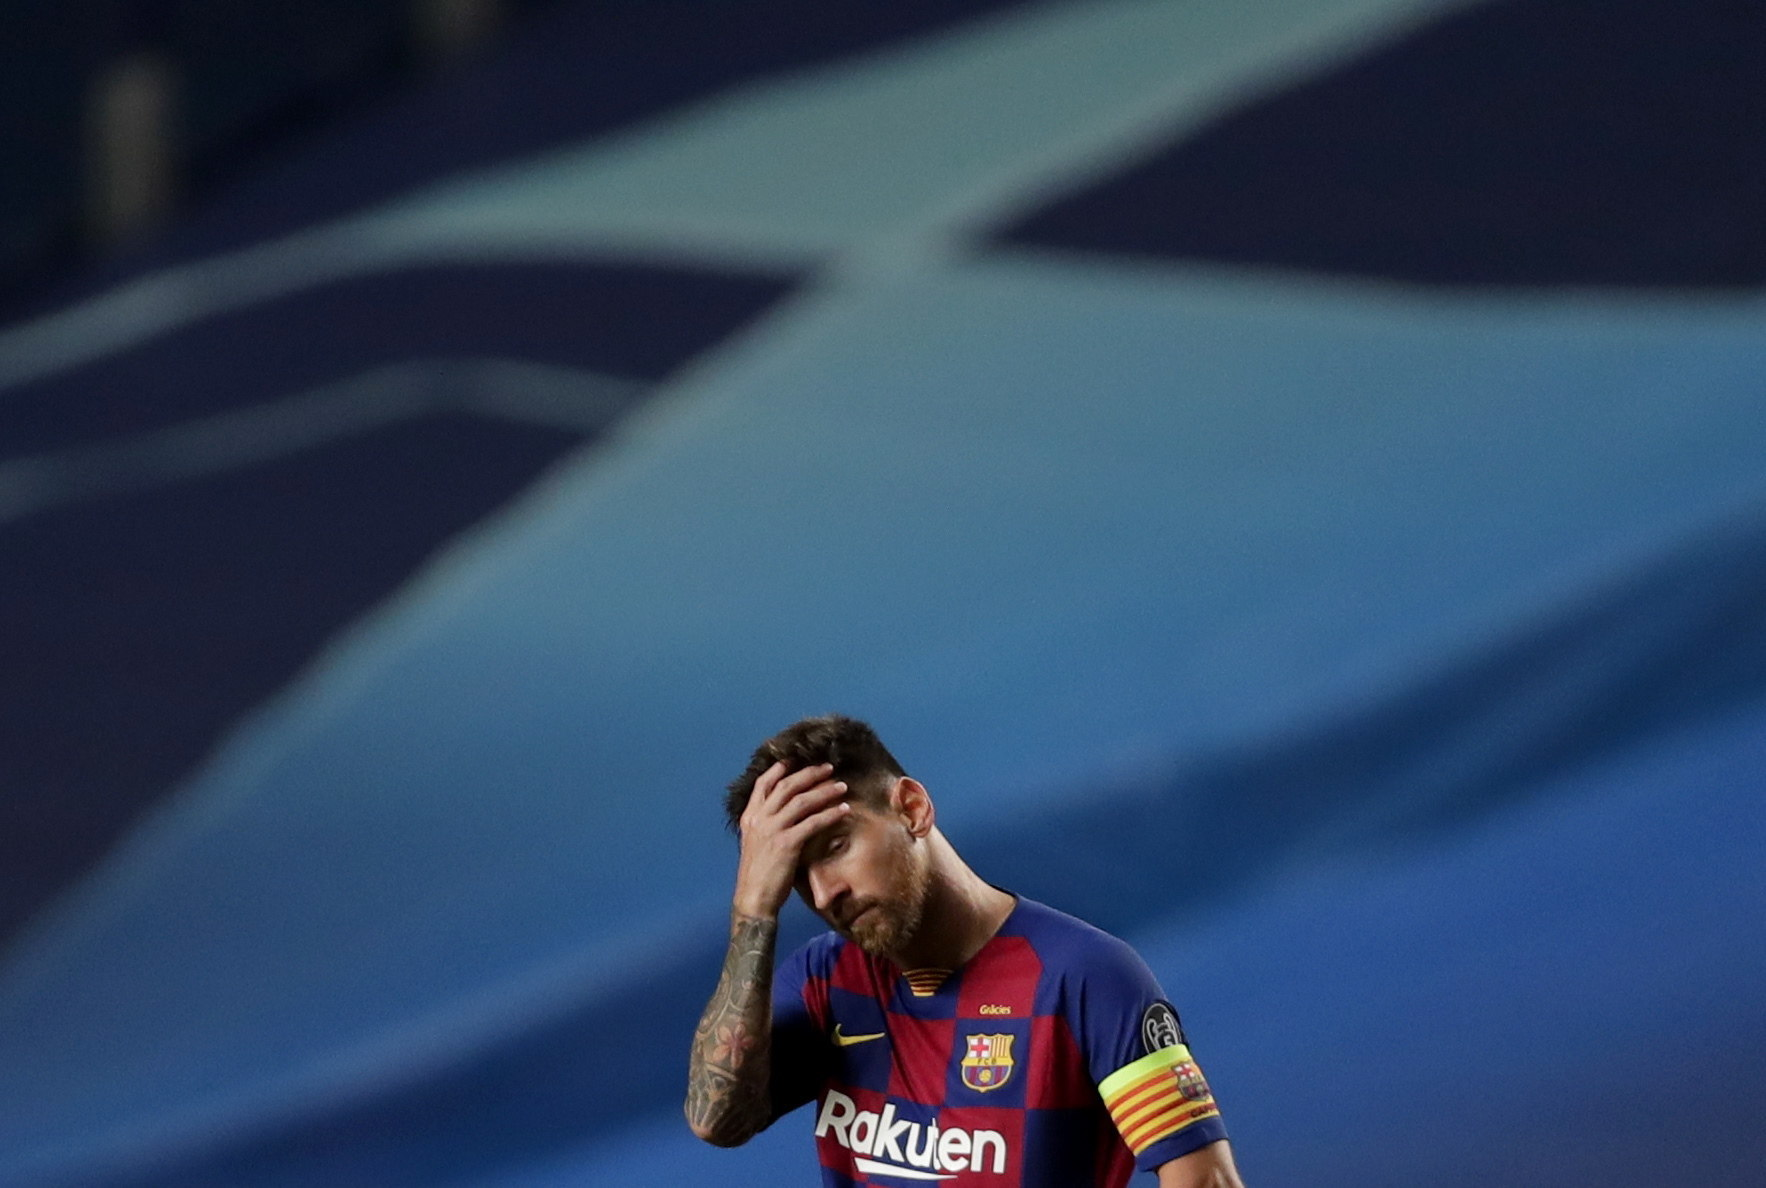 Lisbon (Portugal), 14/08/2020.- Lionel Messi of Barcelona reacts during the UEFA Champions League quarter final match between Barcelona and lt;HIT gt;Bayern lt;/HIT gt; Munich in Lisbon, Portugal, 14 August 2020. (Liga de Campeones, Lisboa) EFE/EPA/Manu Fernandez / POOL